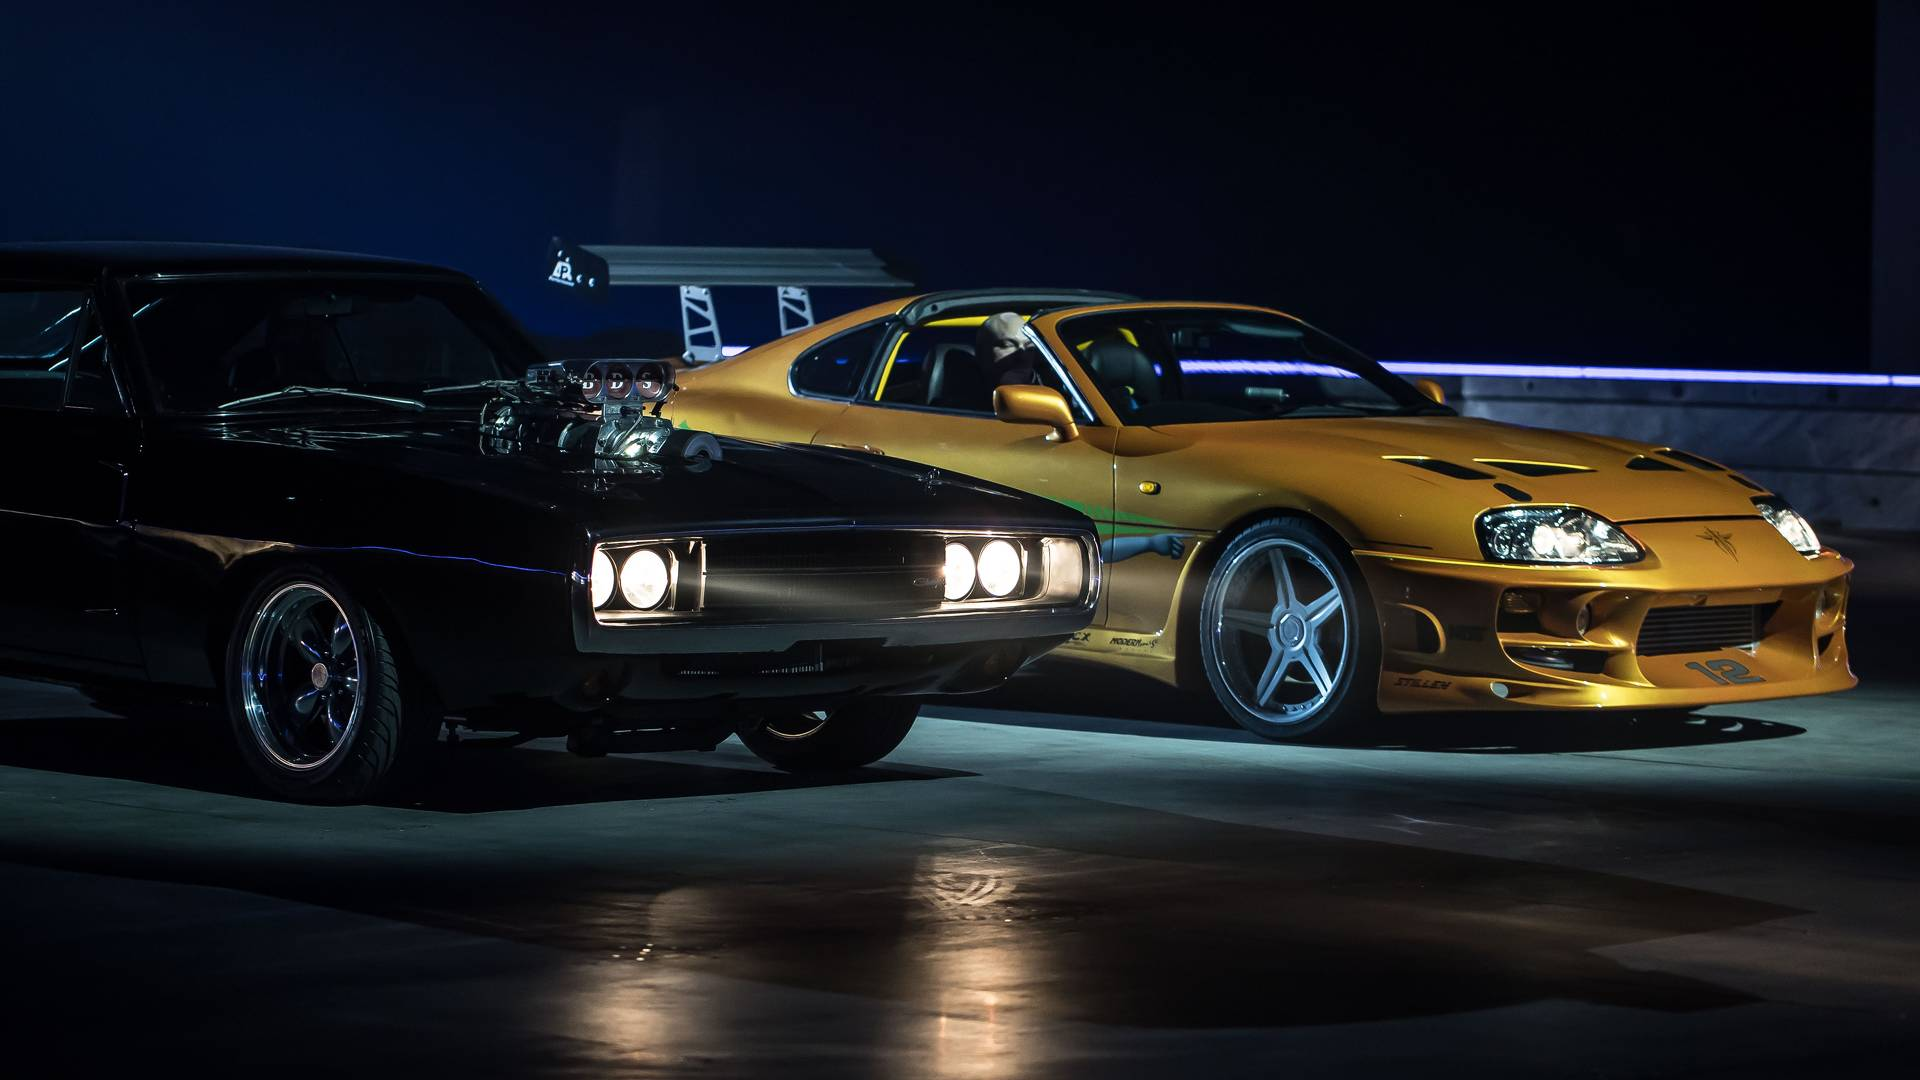 Cars from Fast & Furious Live are Now in Auction